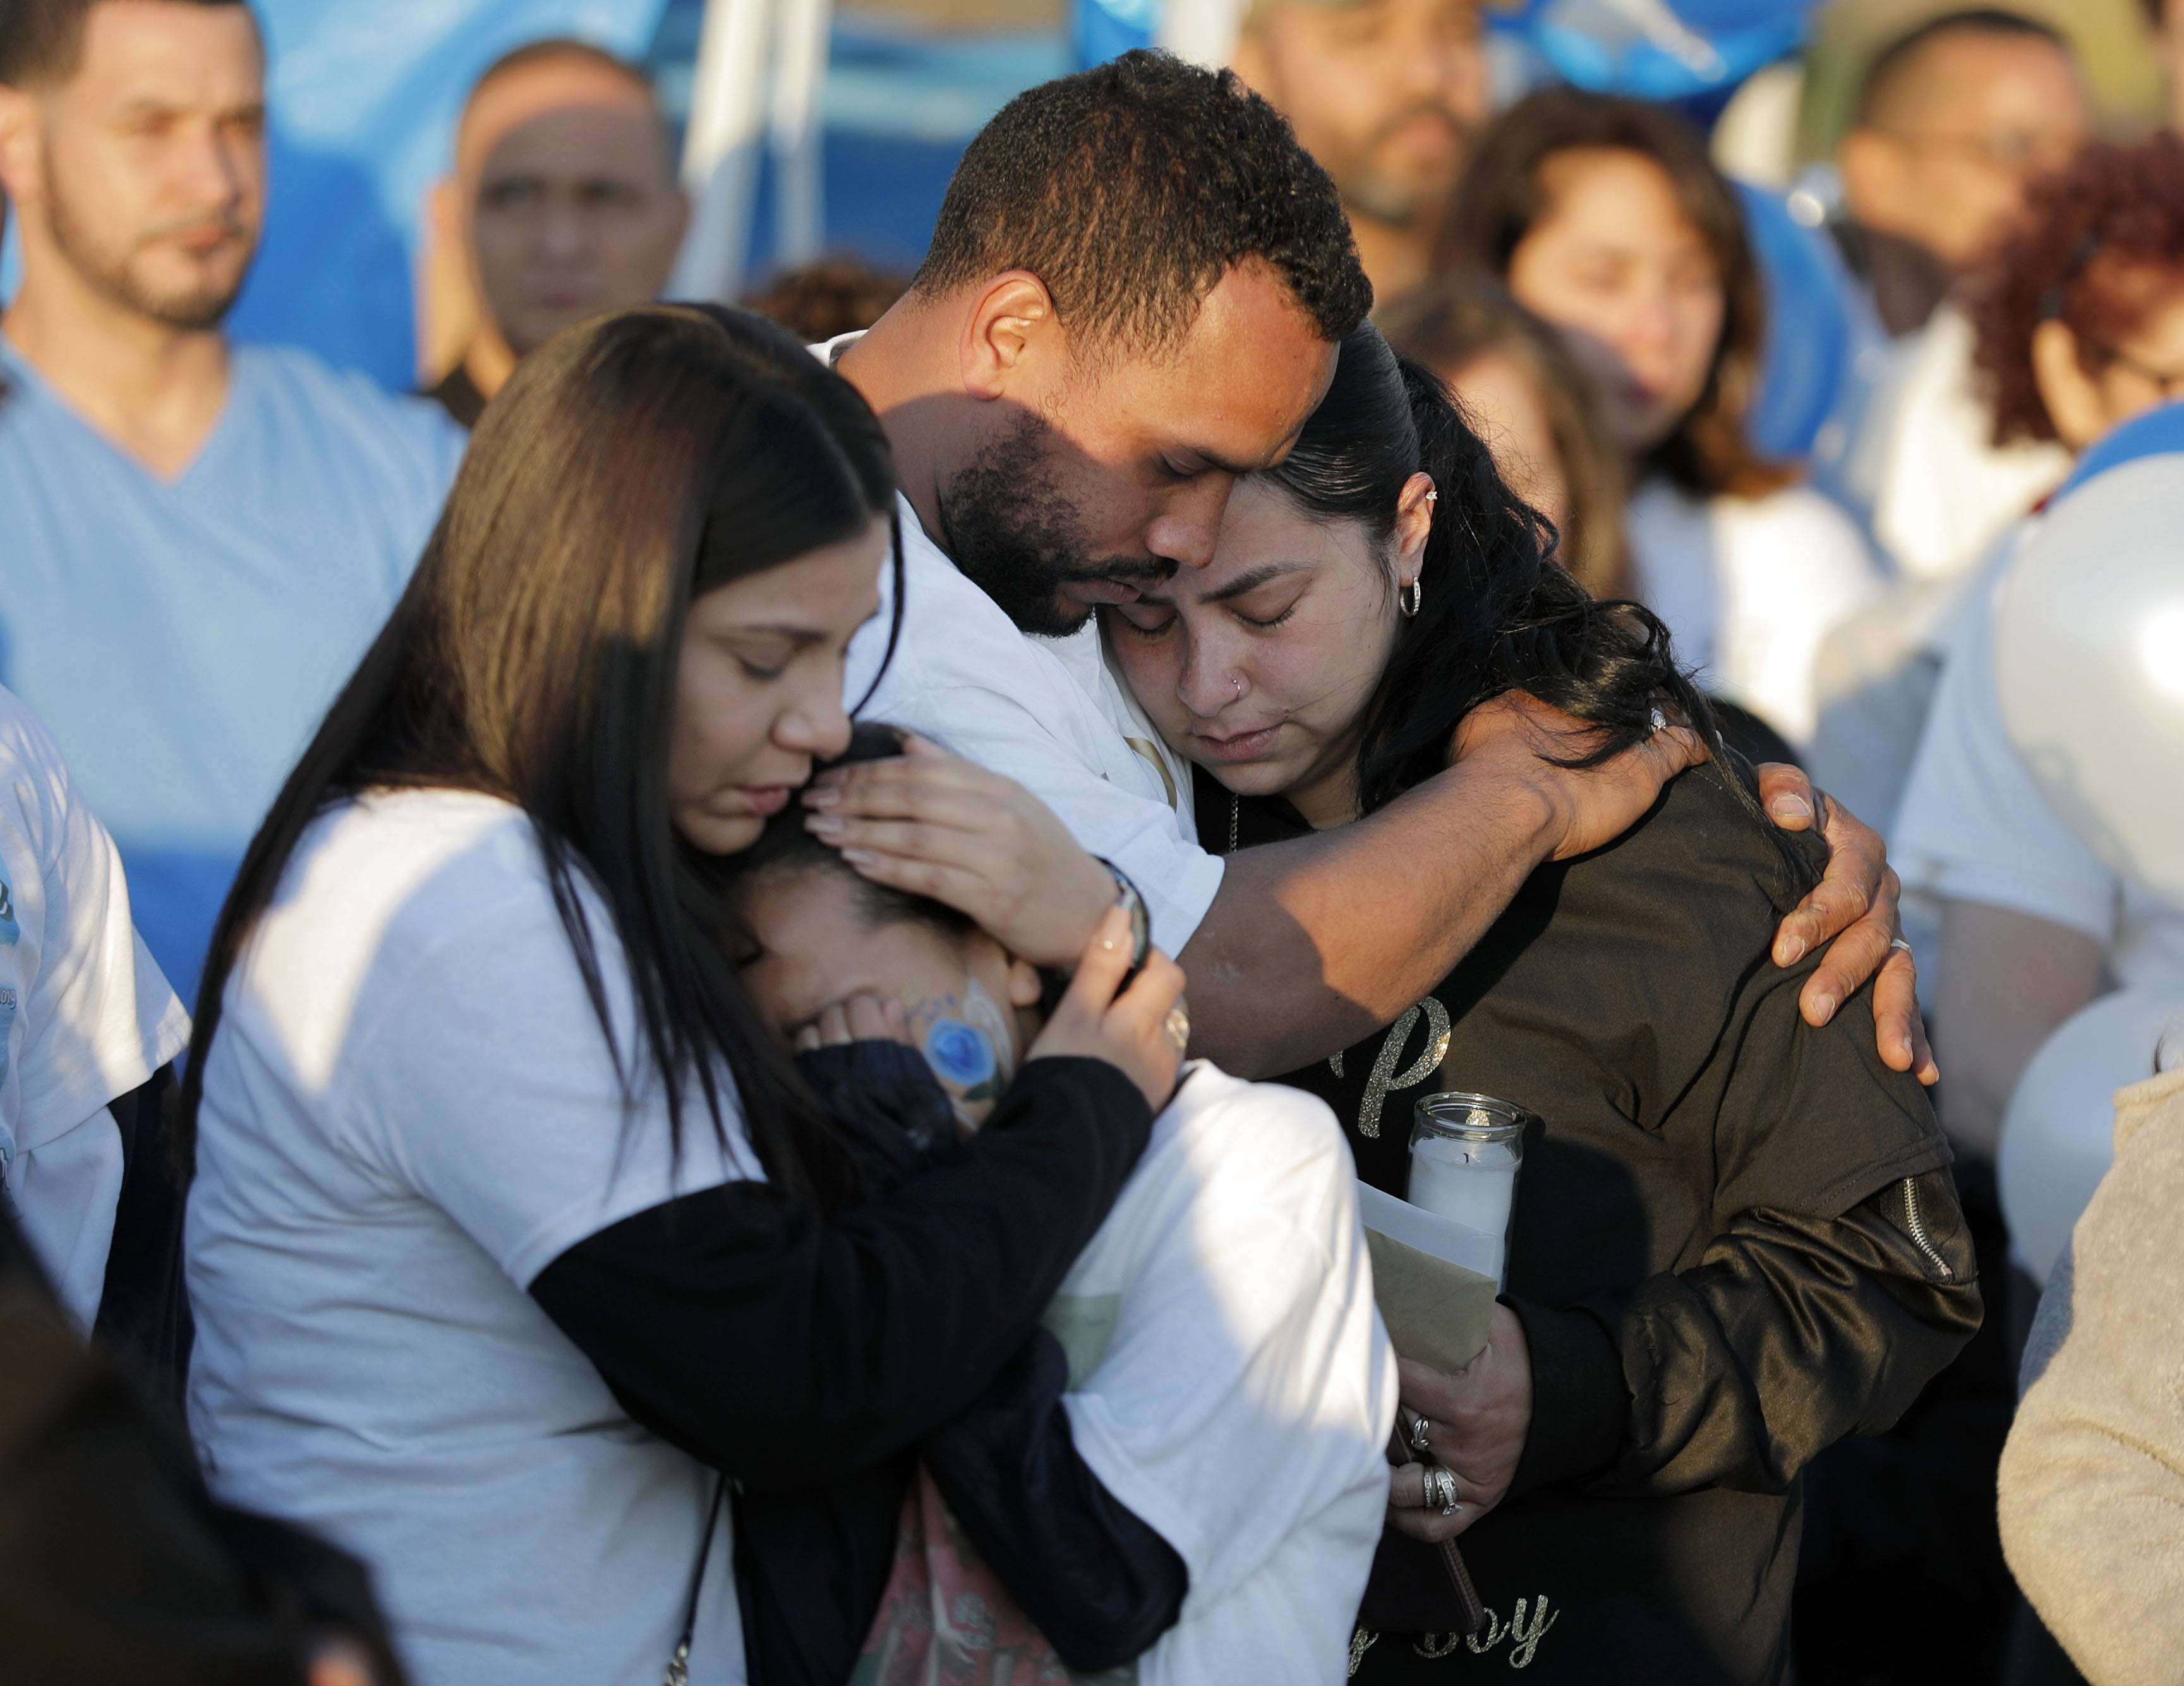 Family members embrace during a public memorial Wednesday for 9-year-old Geraldo Rodriguez, who died after falling off a paddleboat into the water last Friday at Lake View Villa Beach in Wauconda. Geraldo would have turned 10 on Wednesday.